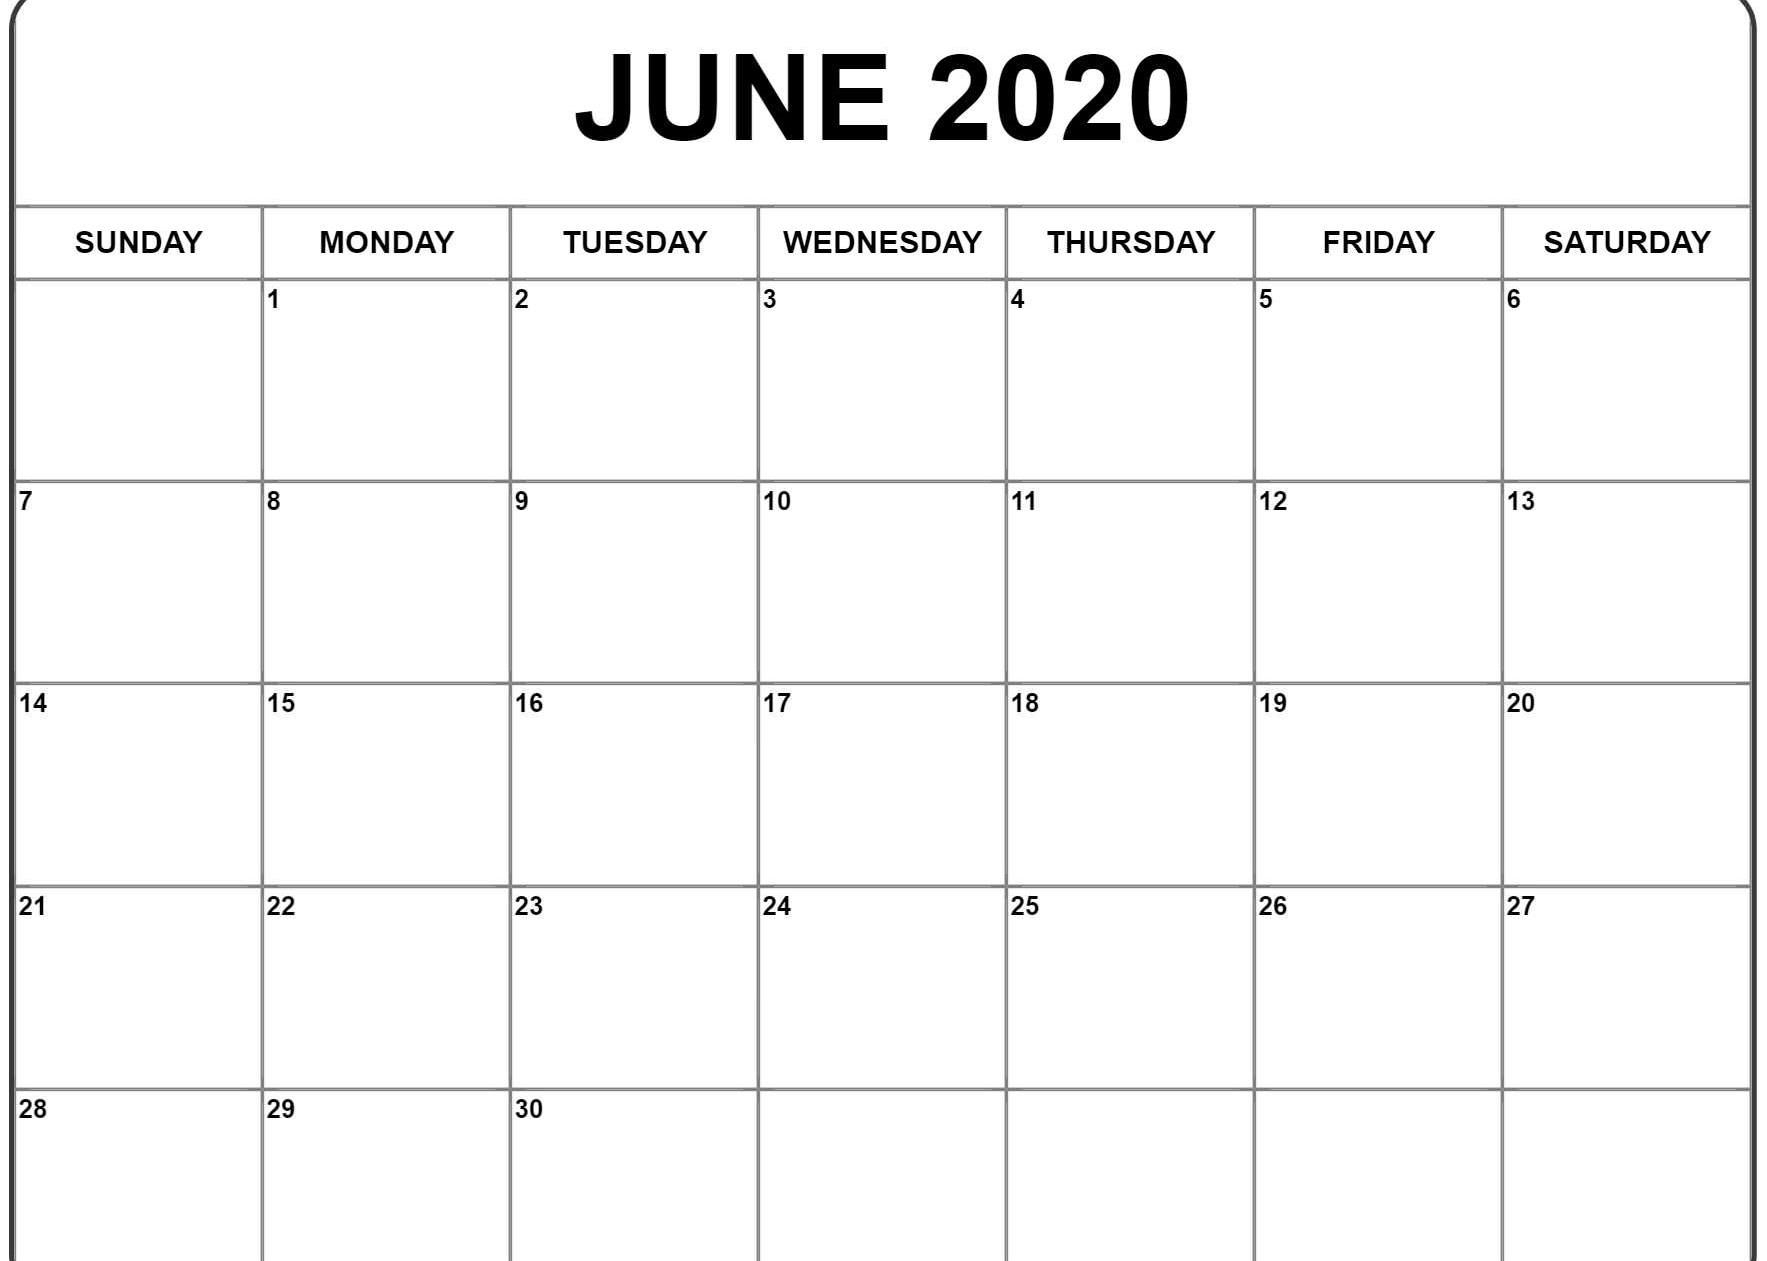 June 2020 Calendar | Printable Calendar Template, Monthly